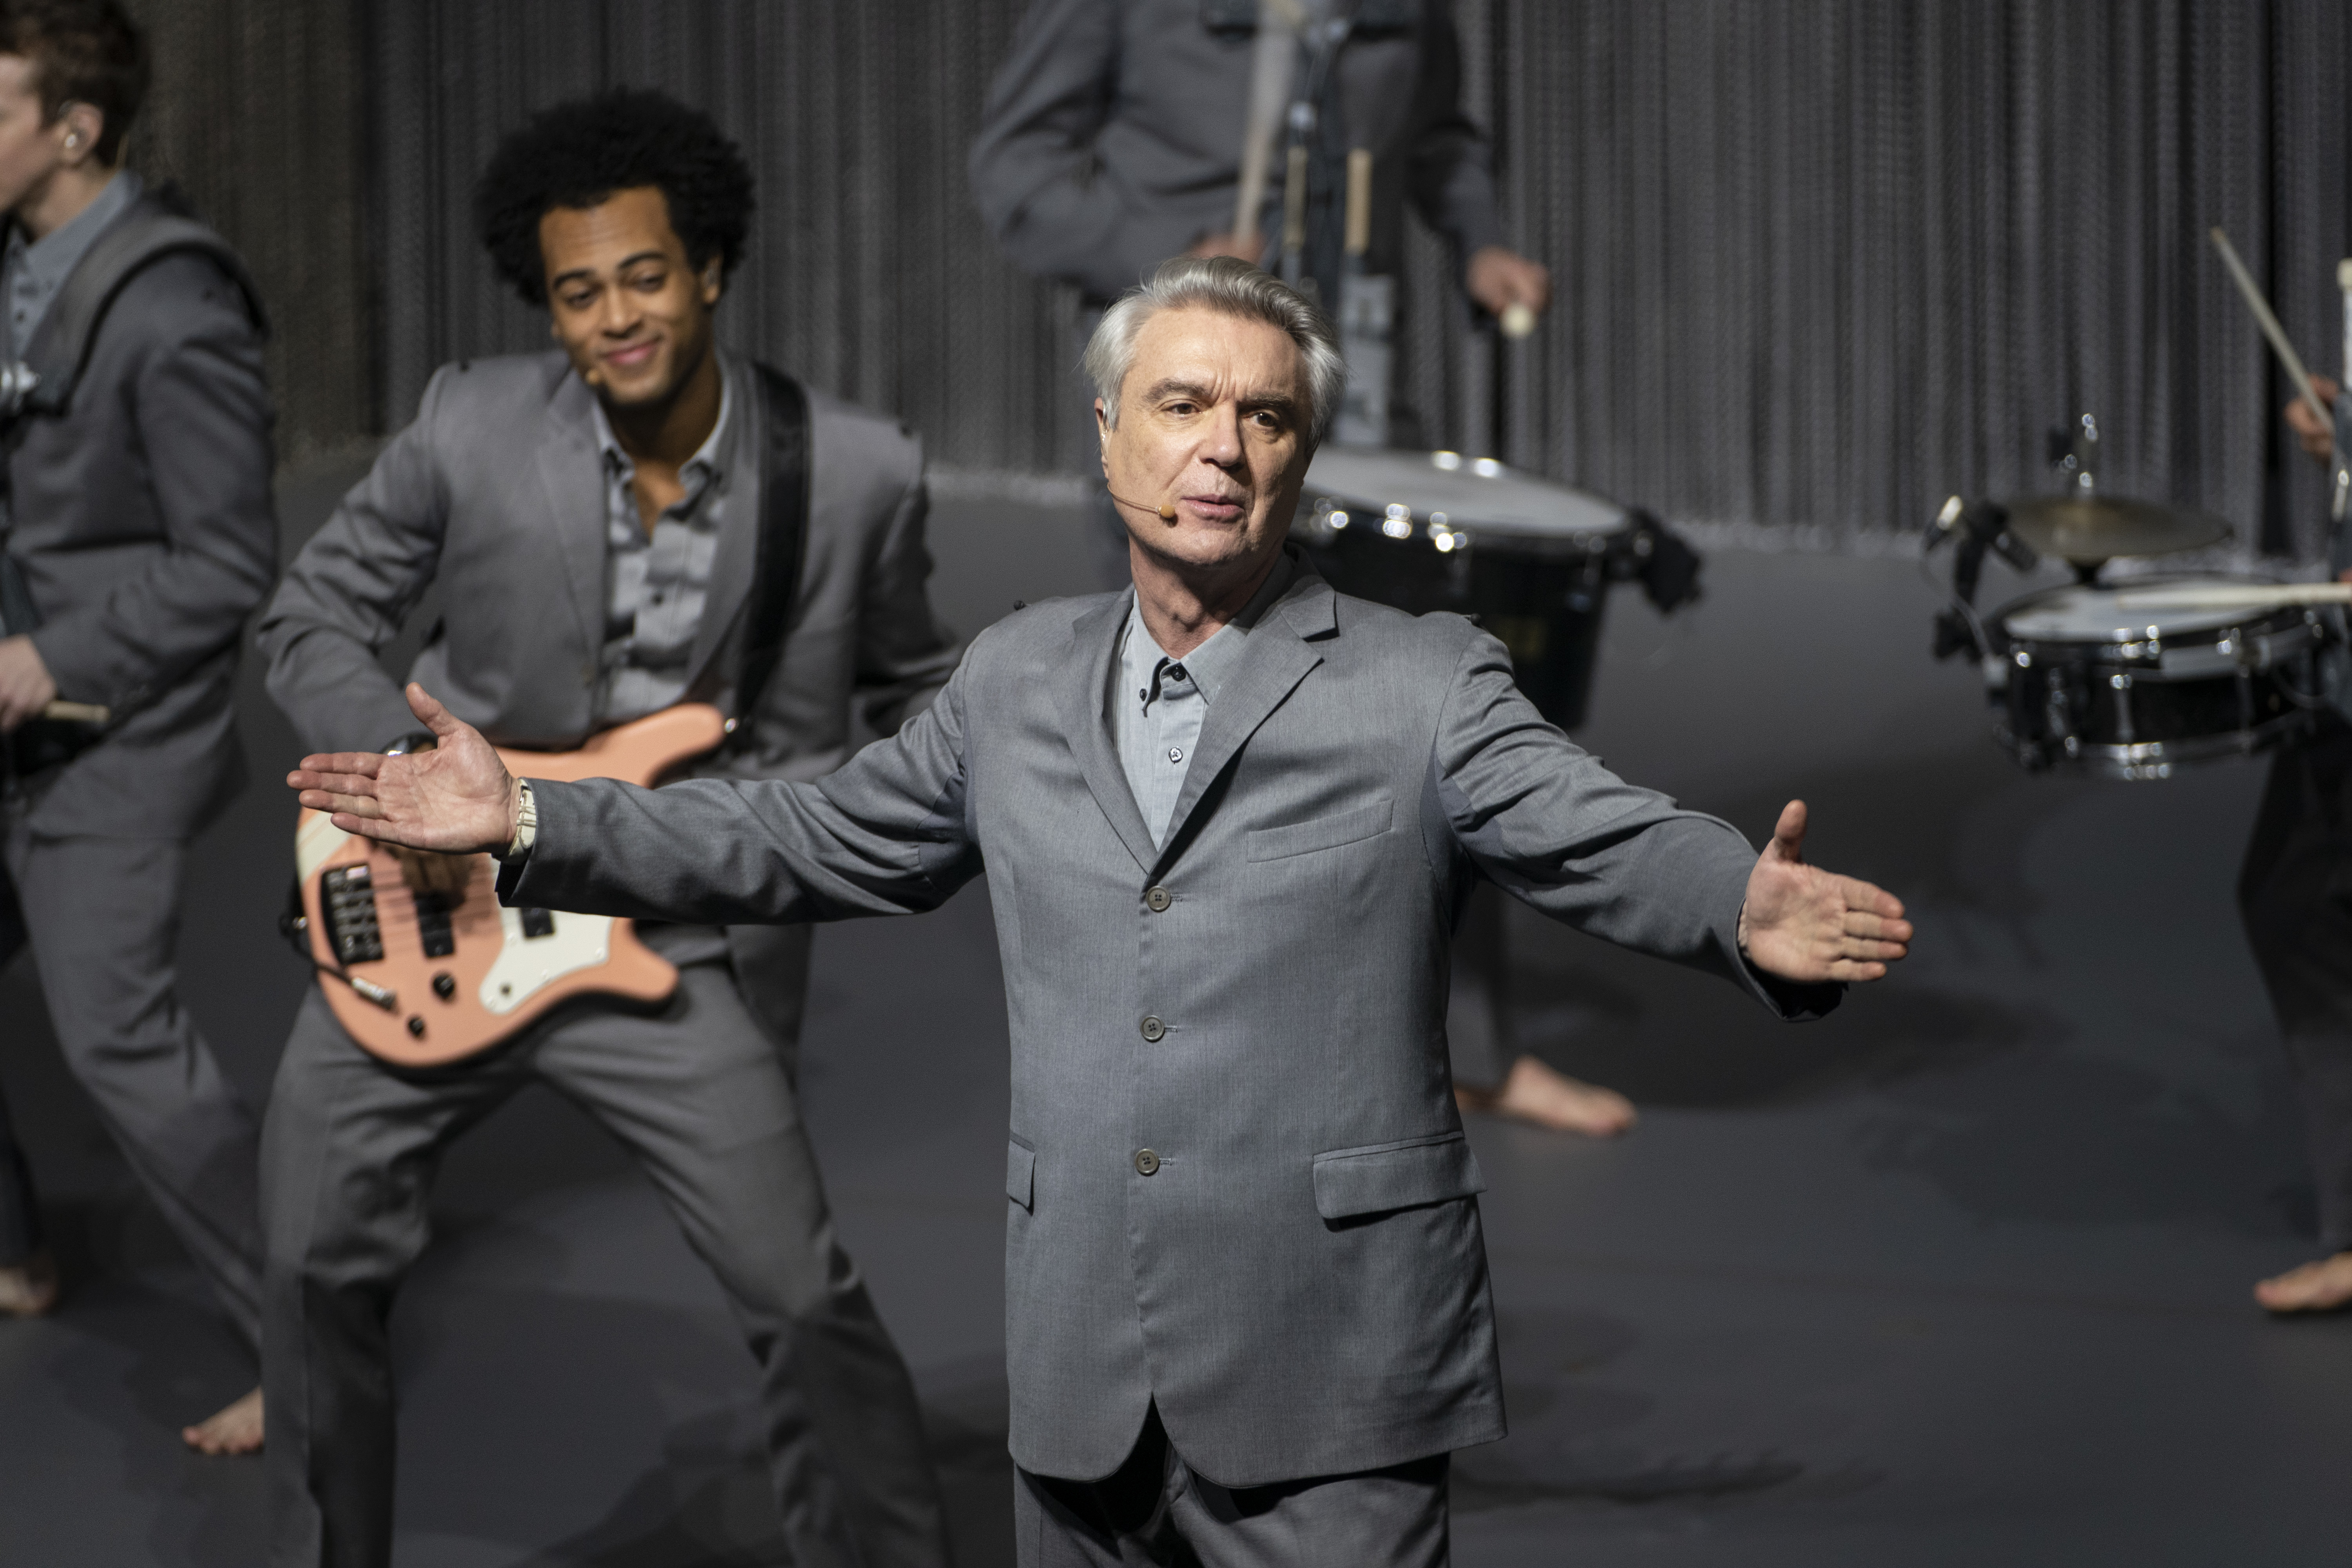 David Byrne, in a grey suit, stands with his hands spread out wide.